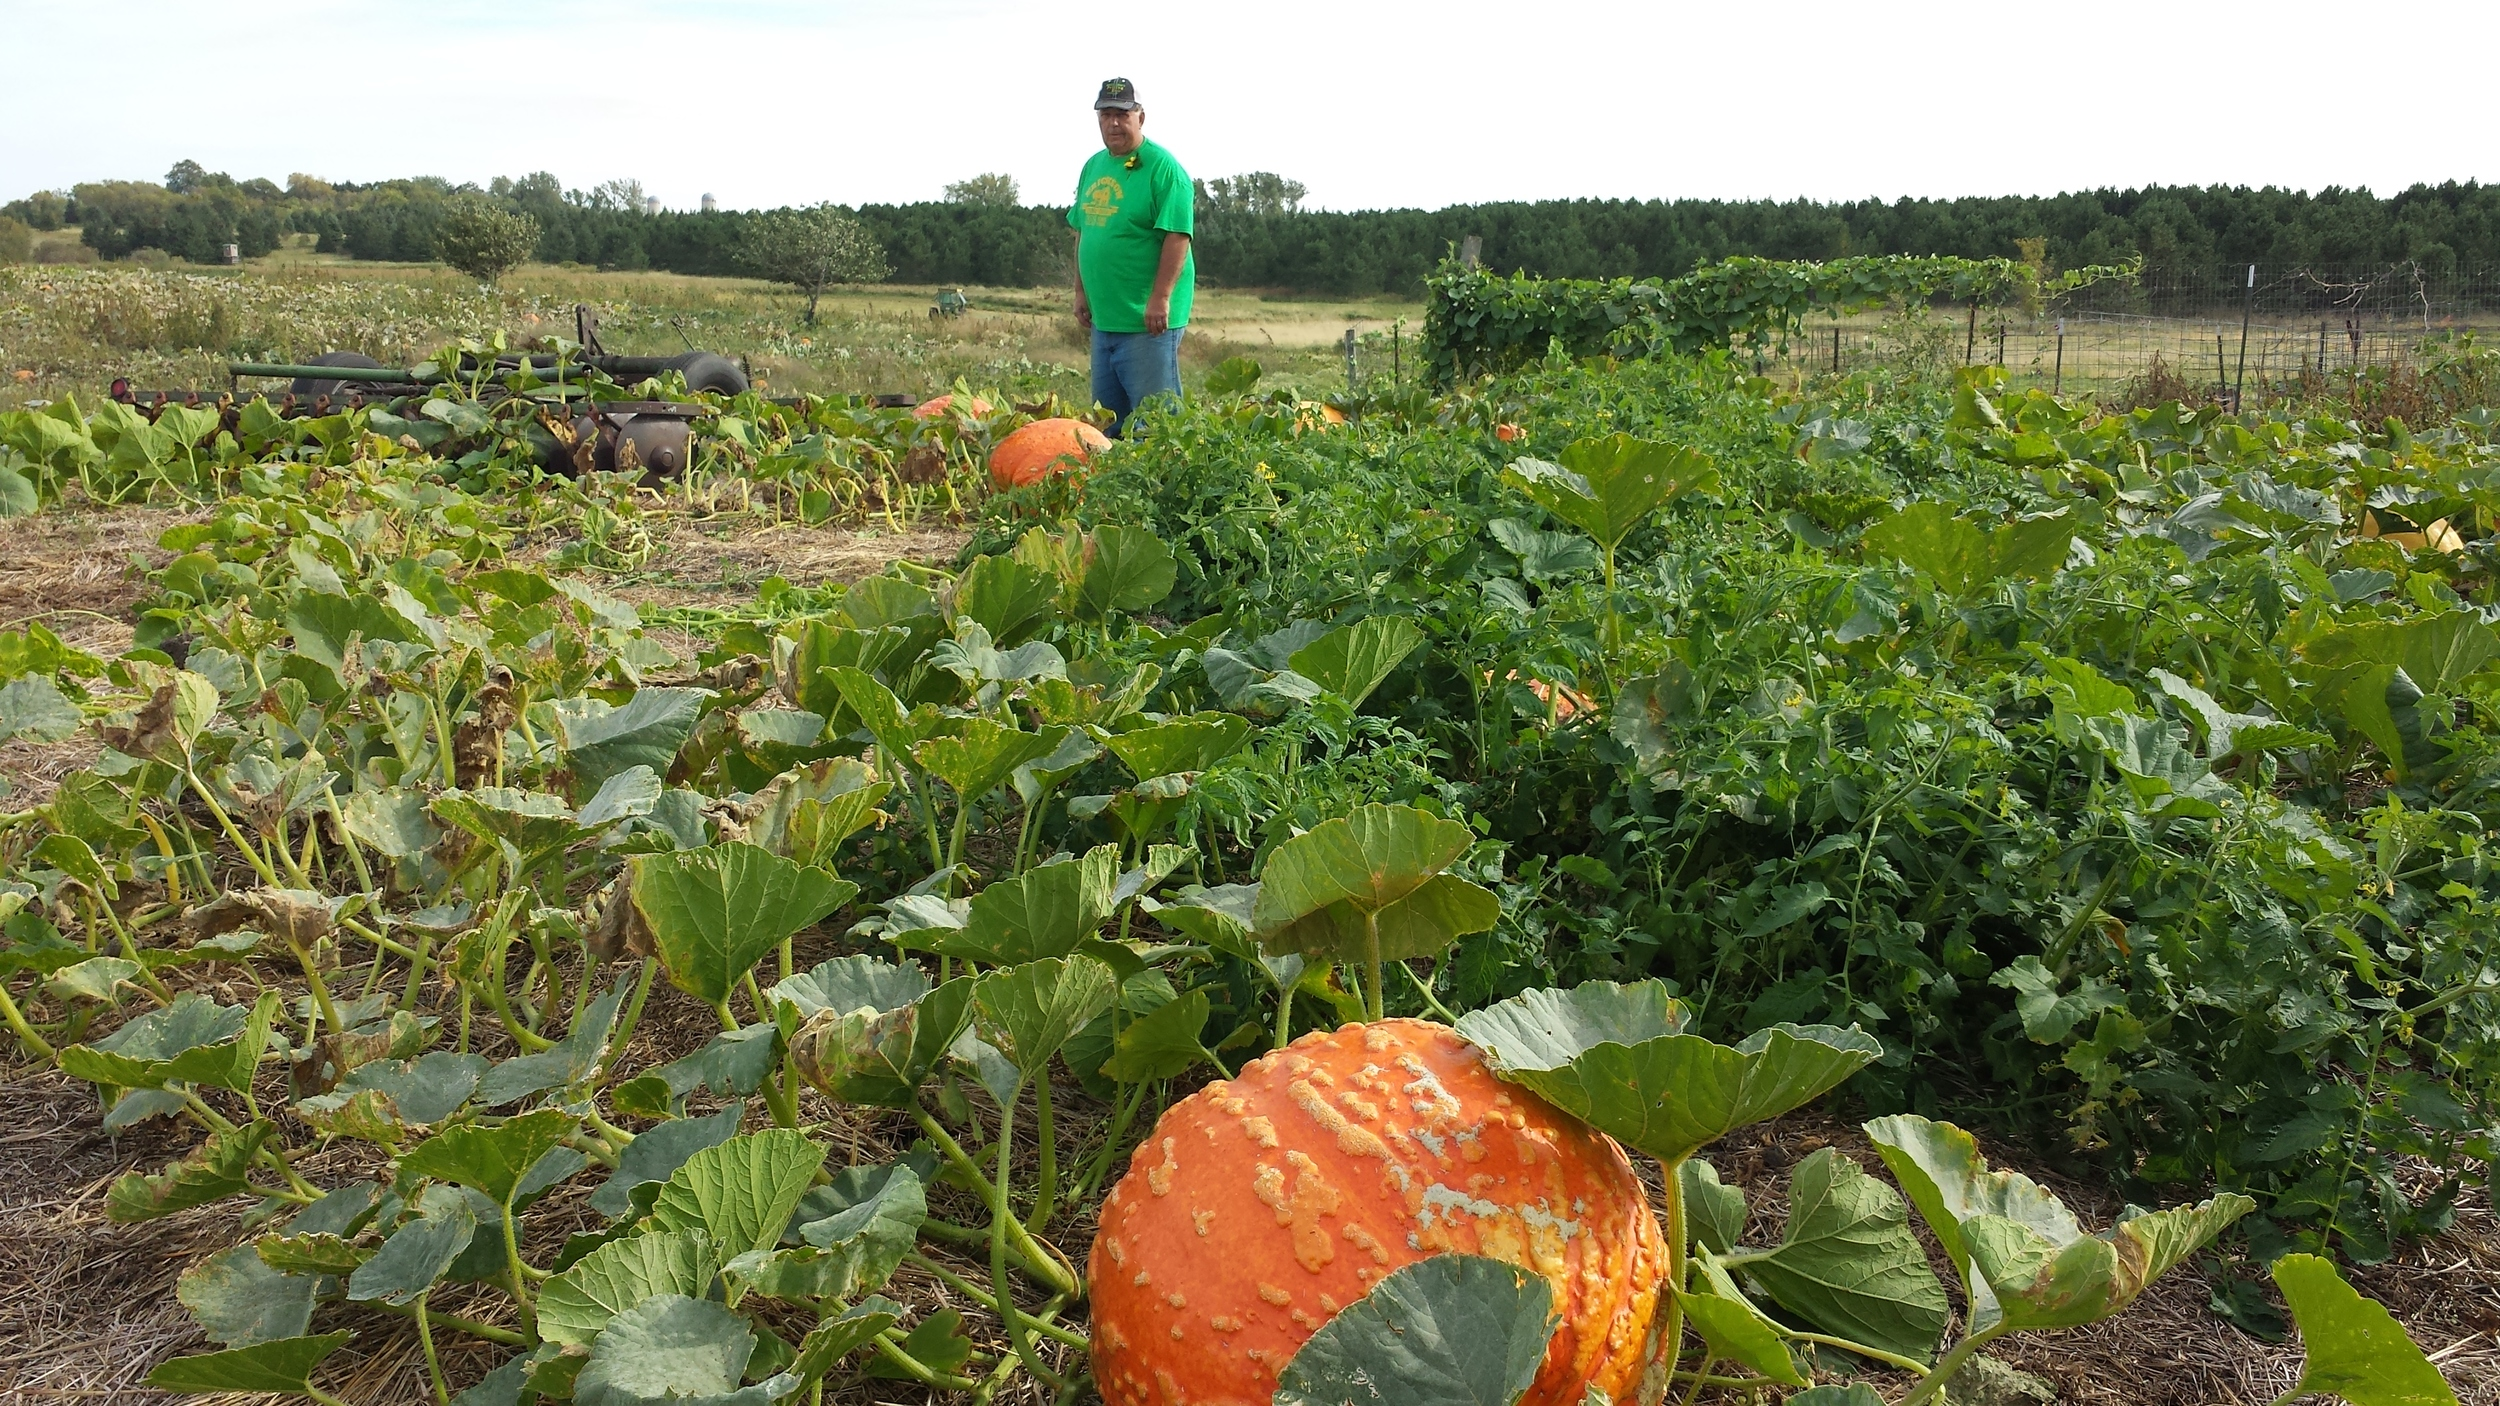 Dave inspects the pumpkins, ready for visitors to pick!